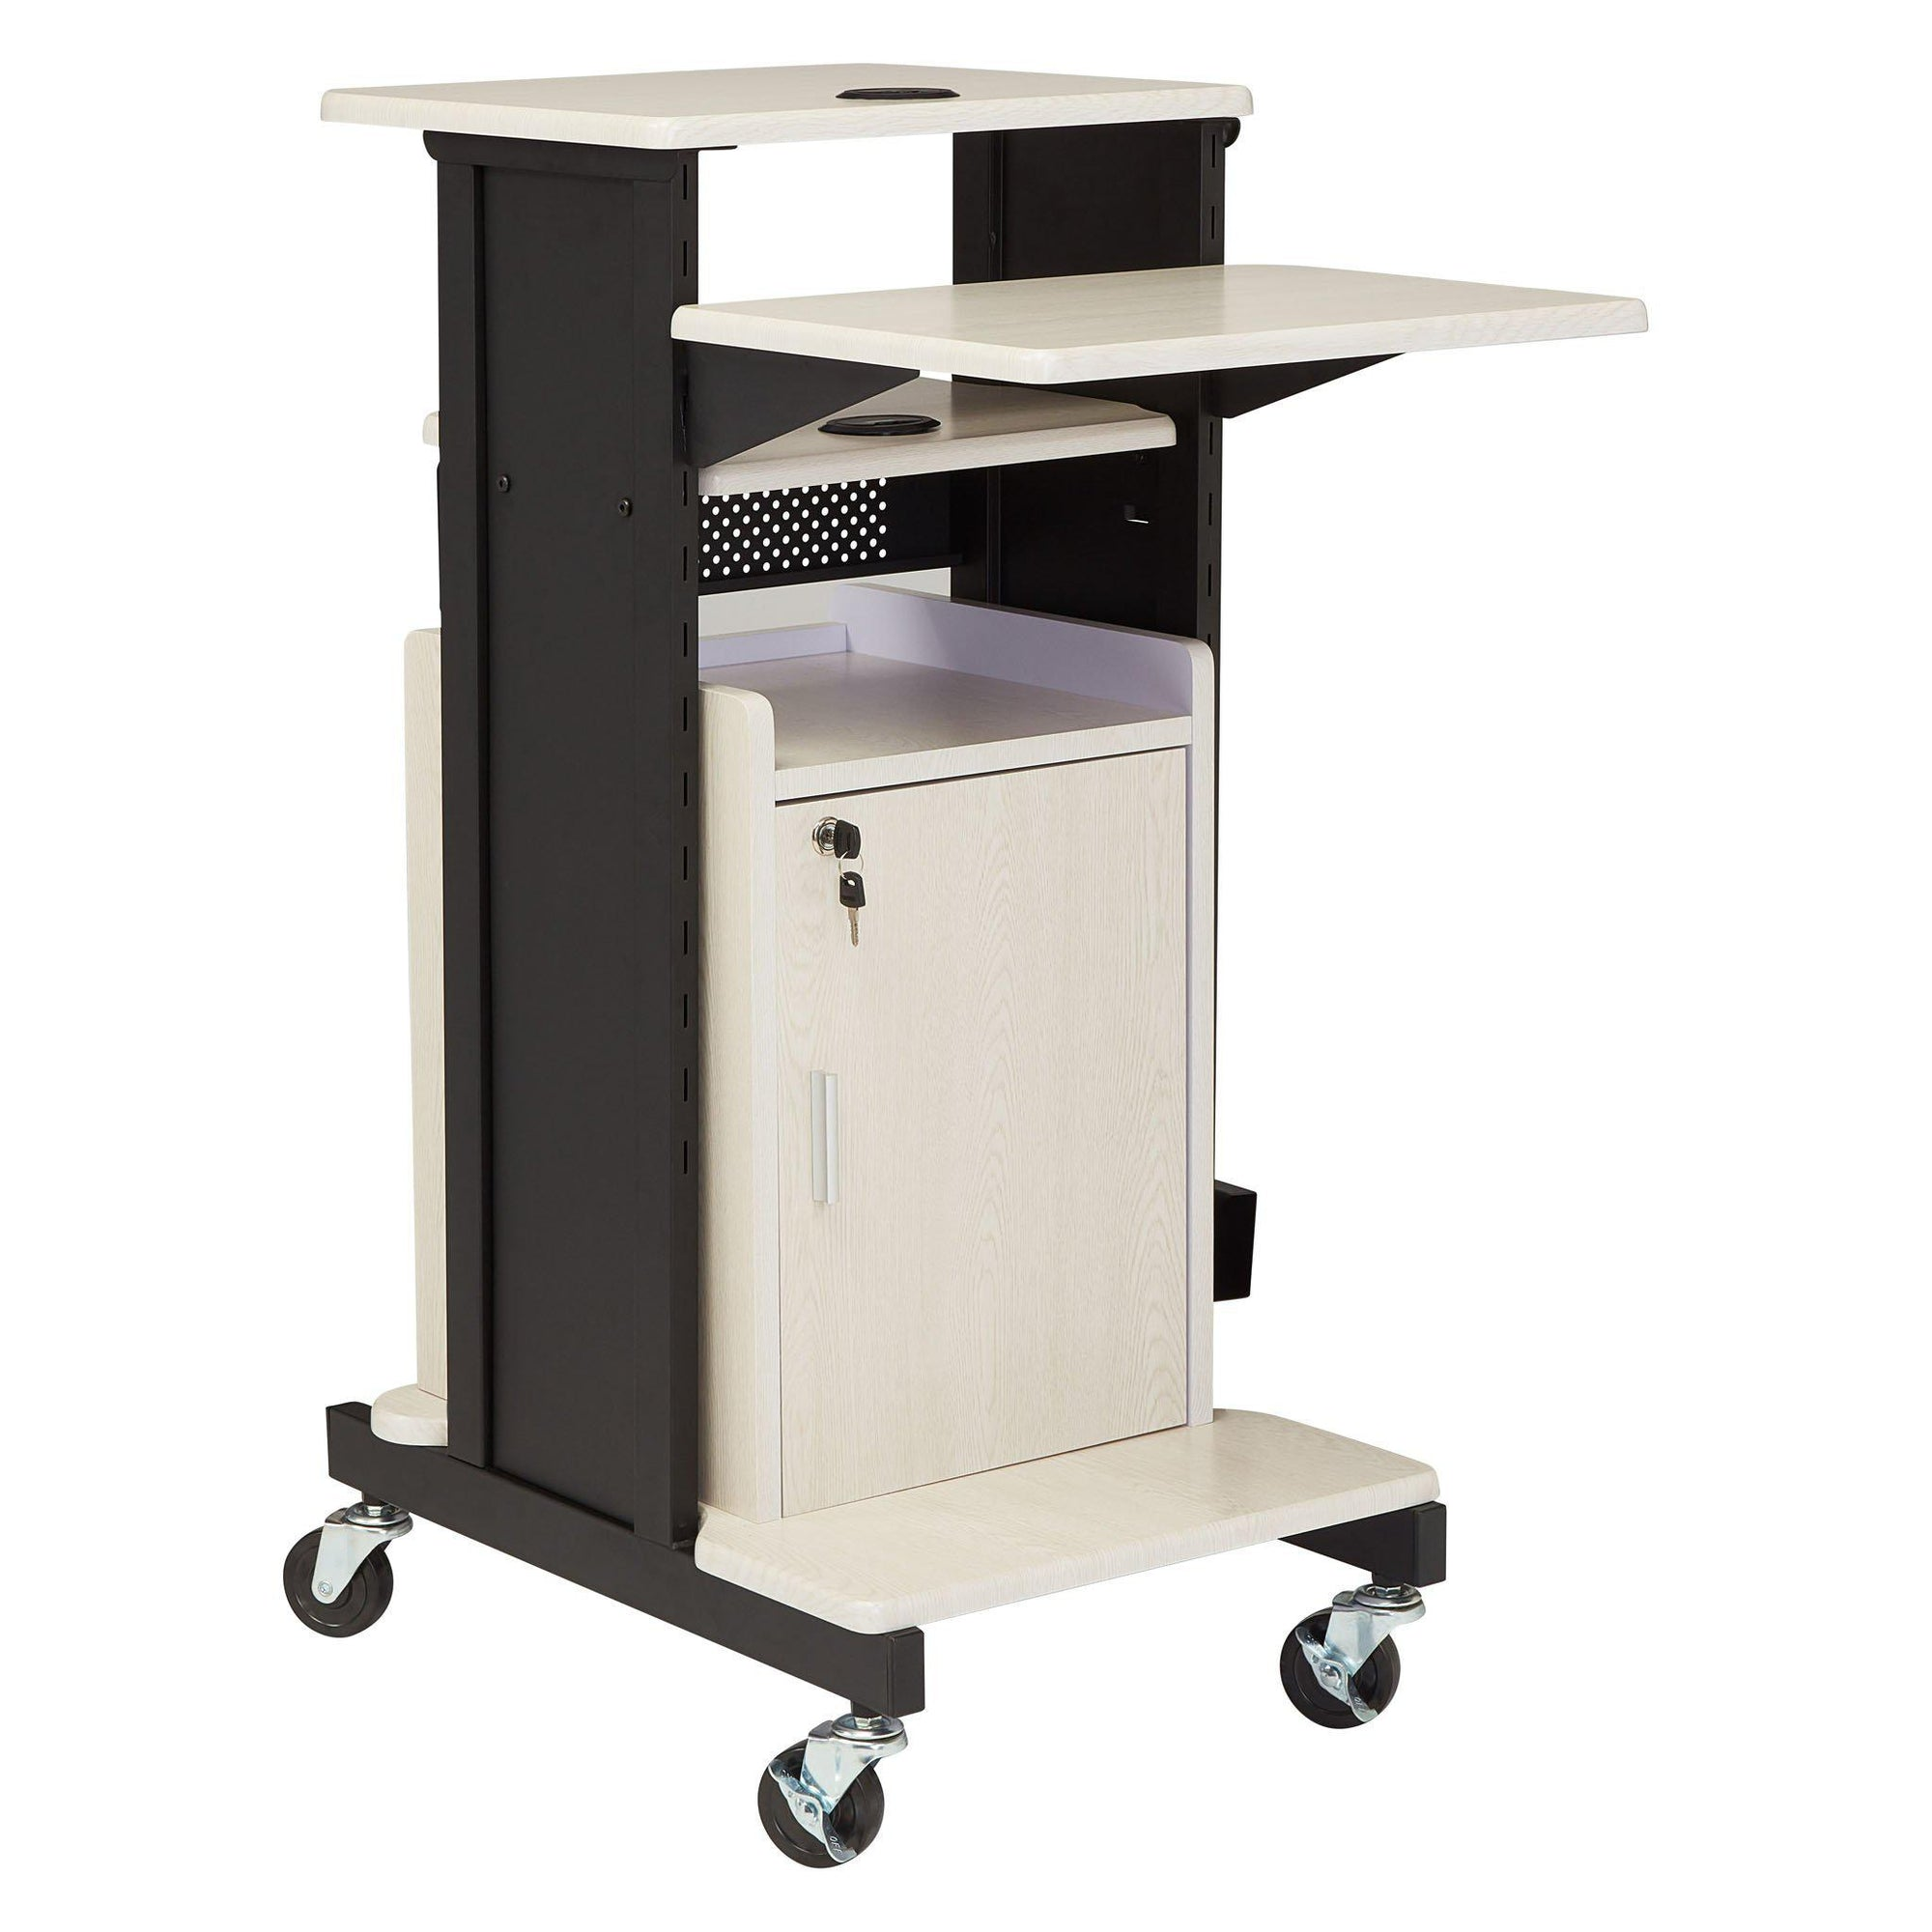 Oklahoma Sound® Premium Plus Presentation Cart with Storage Cabinet-Audio-Visual/Presentation-